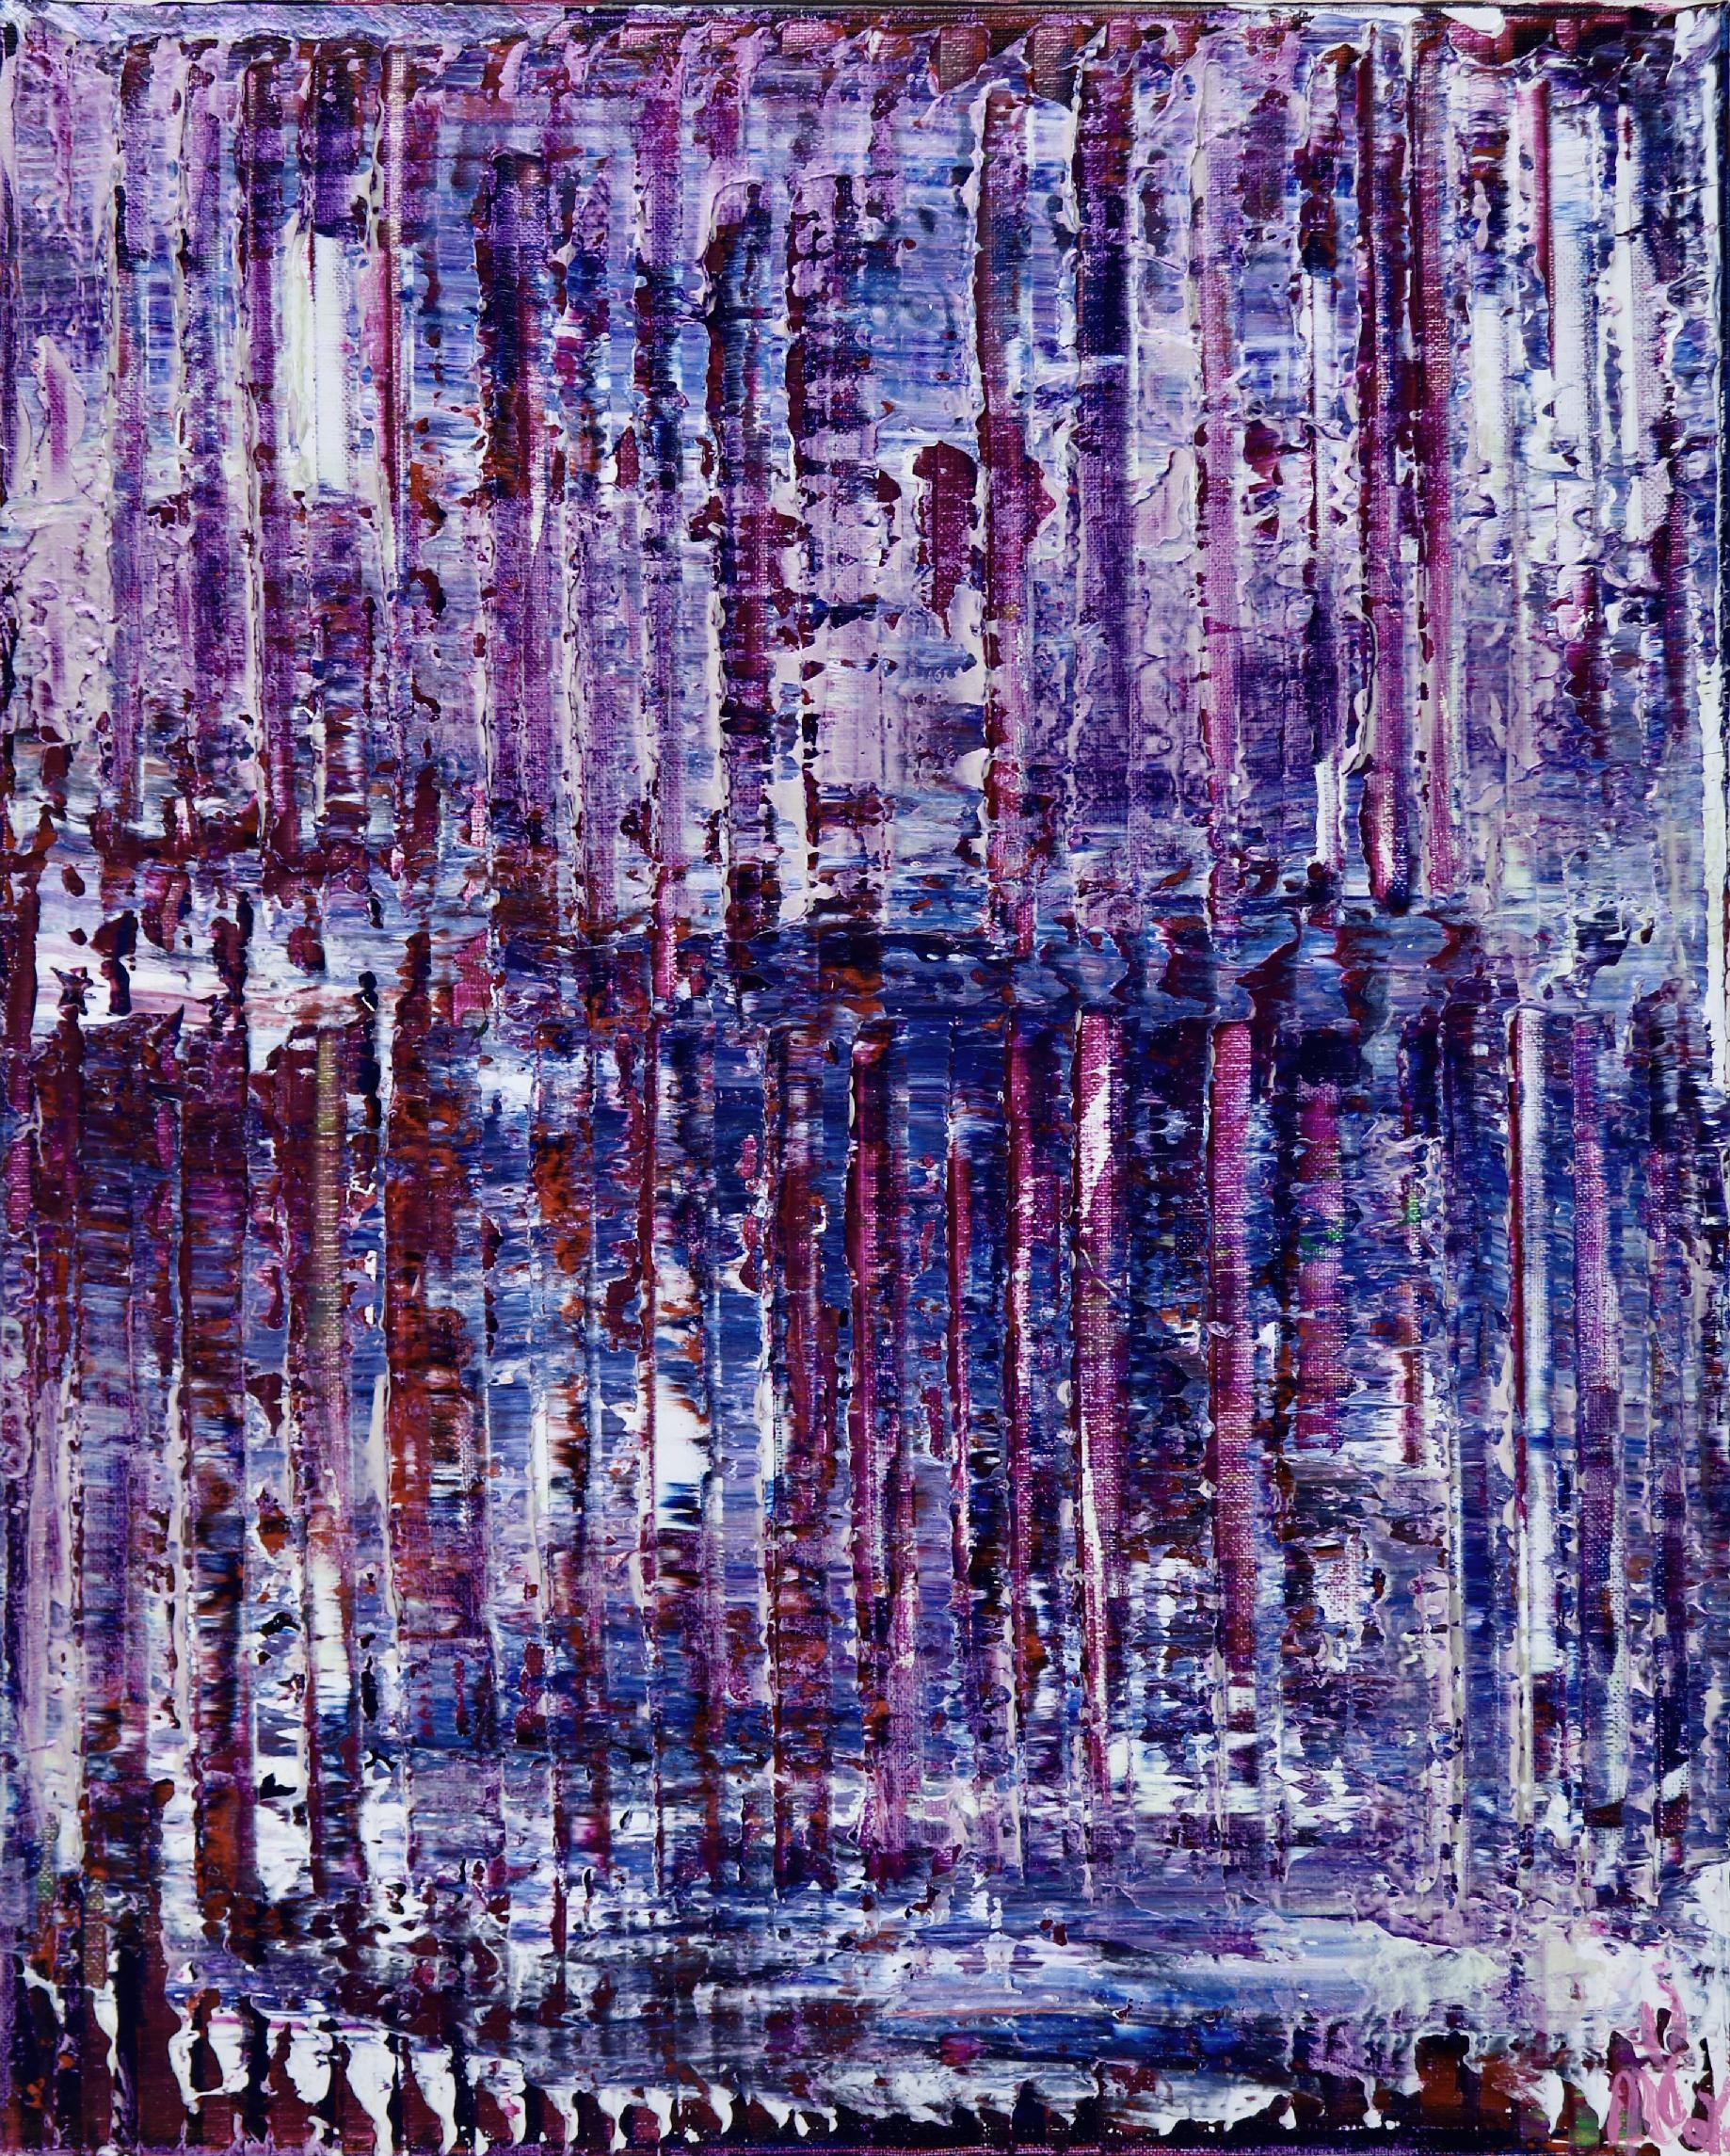 Full Canvas - Purple Panorama (Purple Lights) 2020 by Nestor Toro